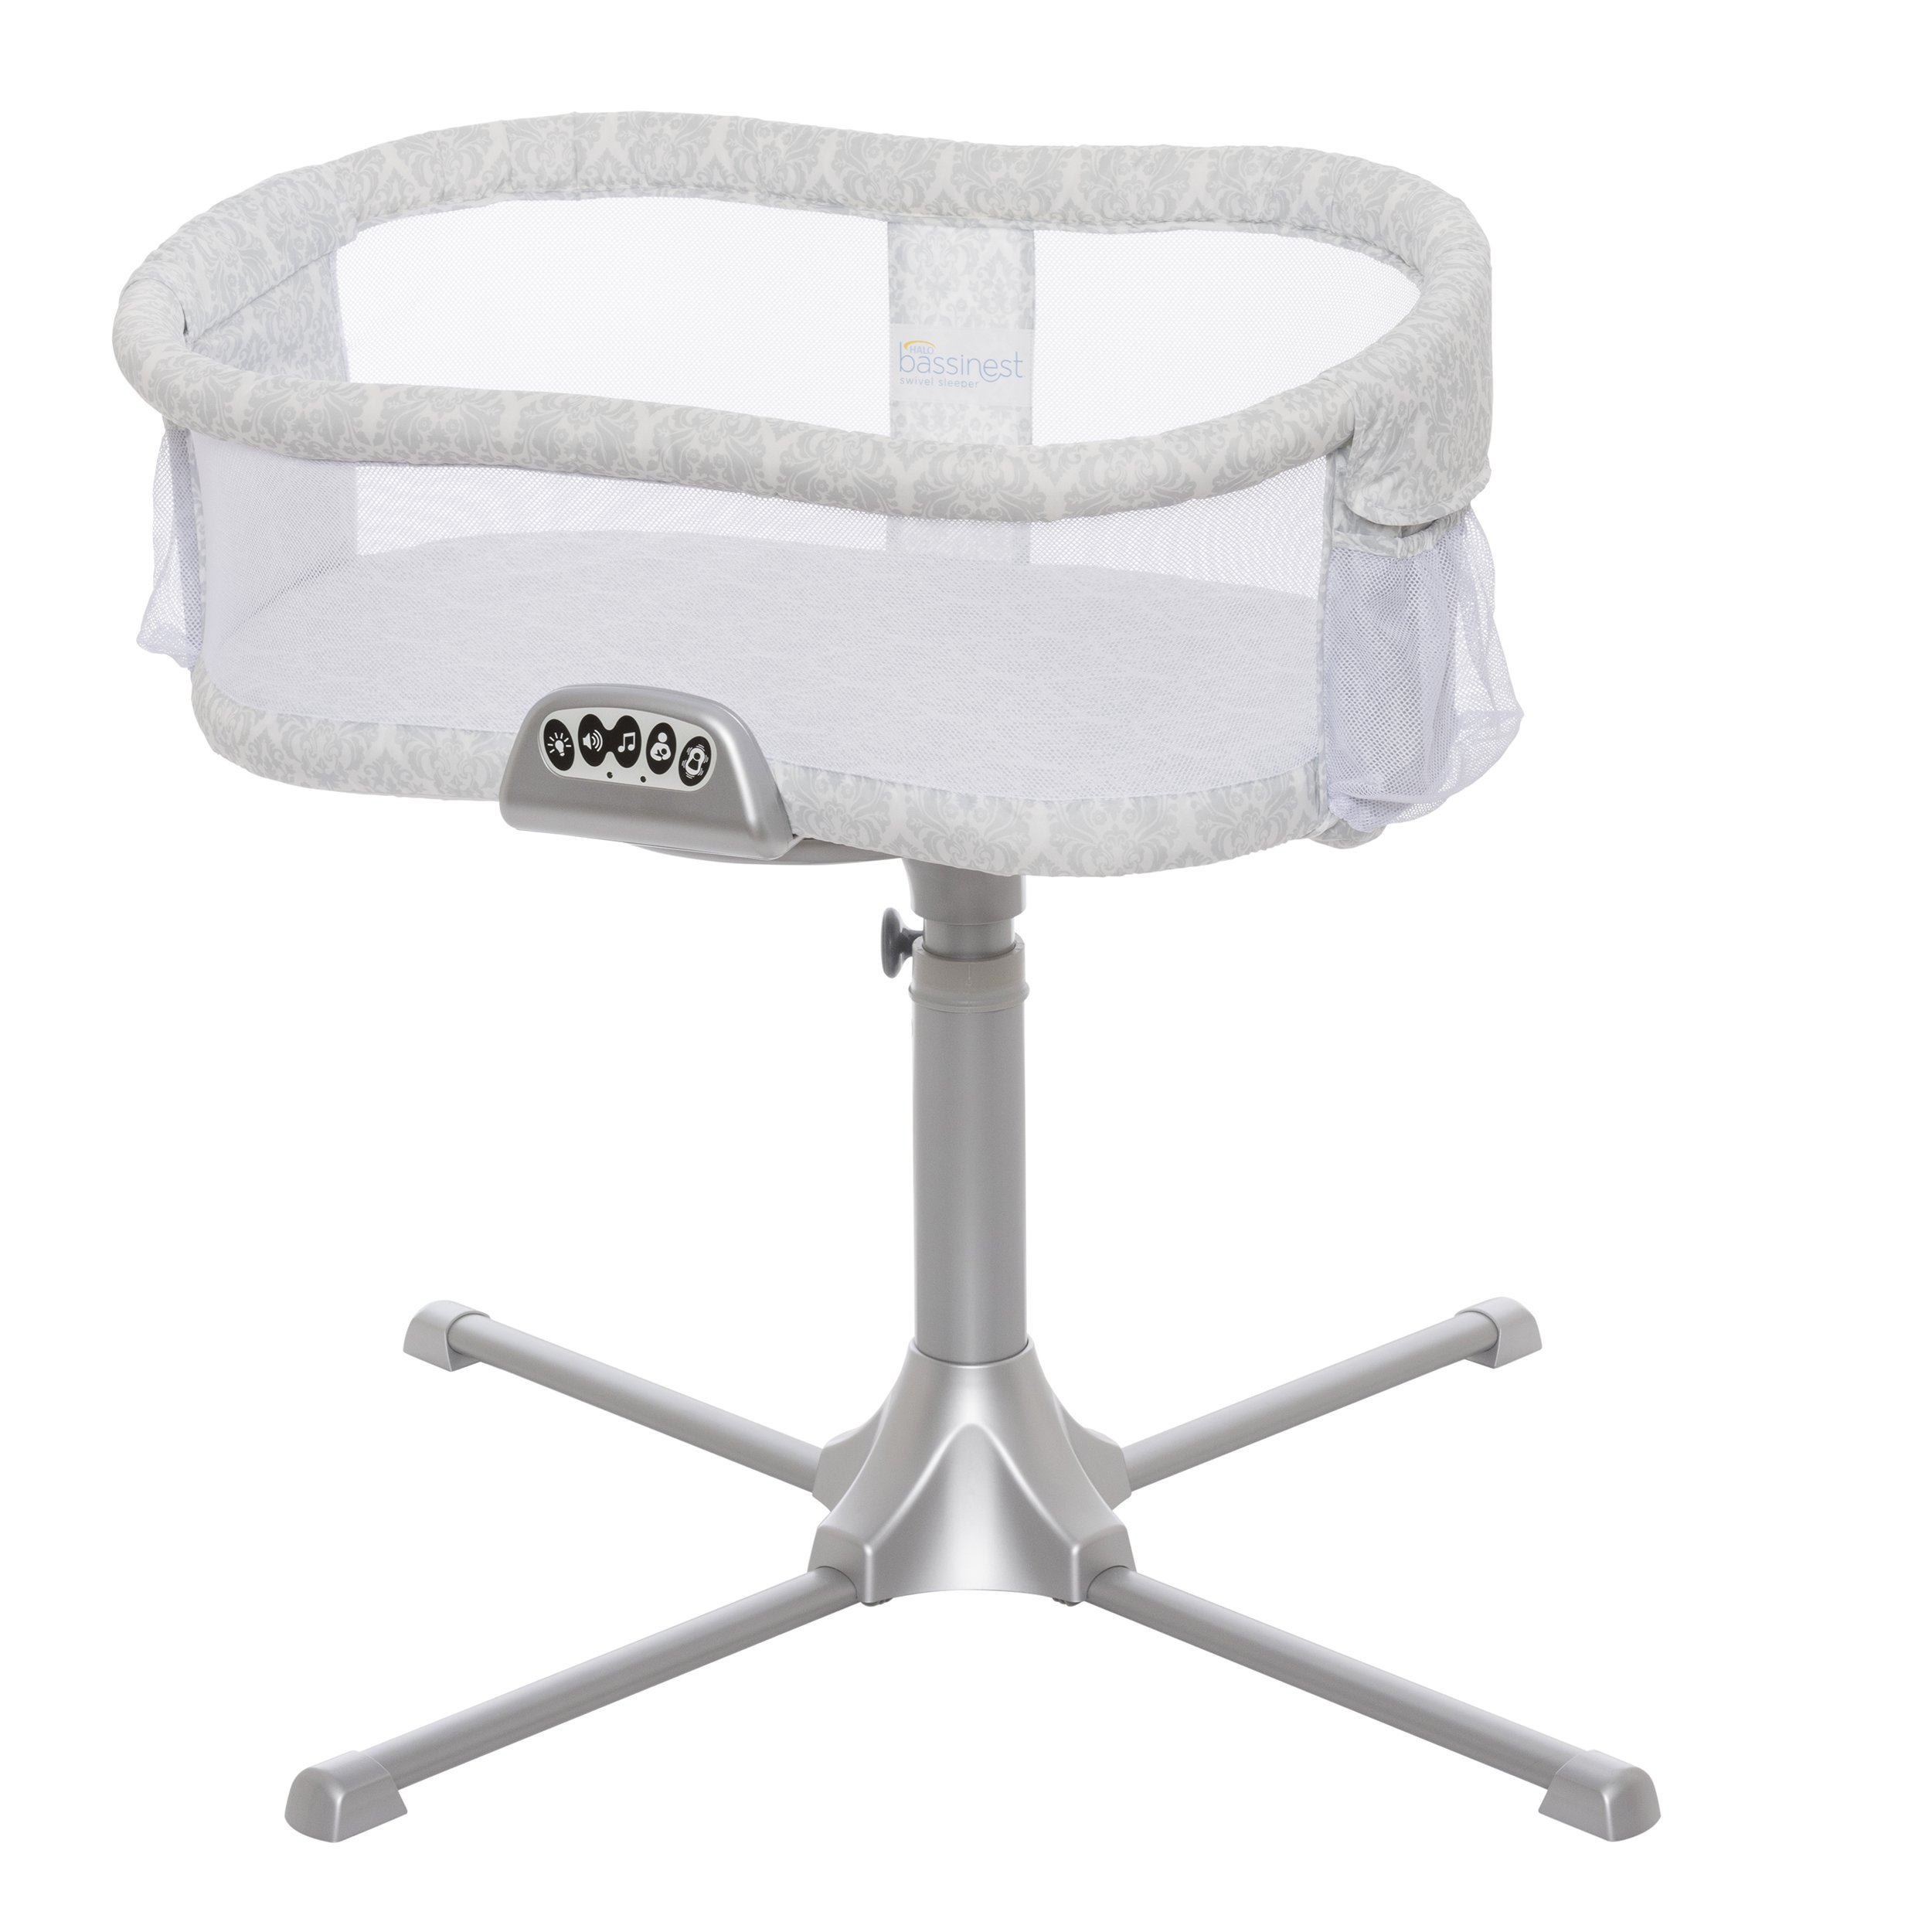 HALO Bassinest Swivel Sleeper – Premiere Series Bassinet by Halo (Image #7)